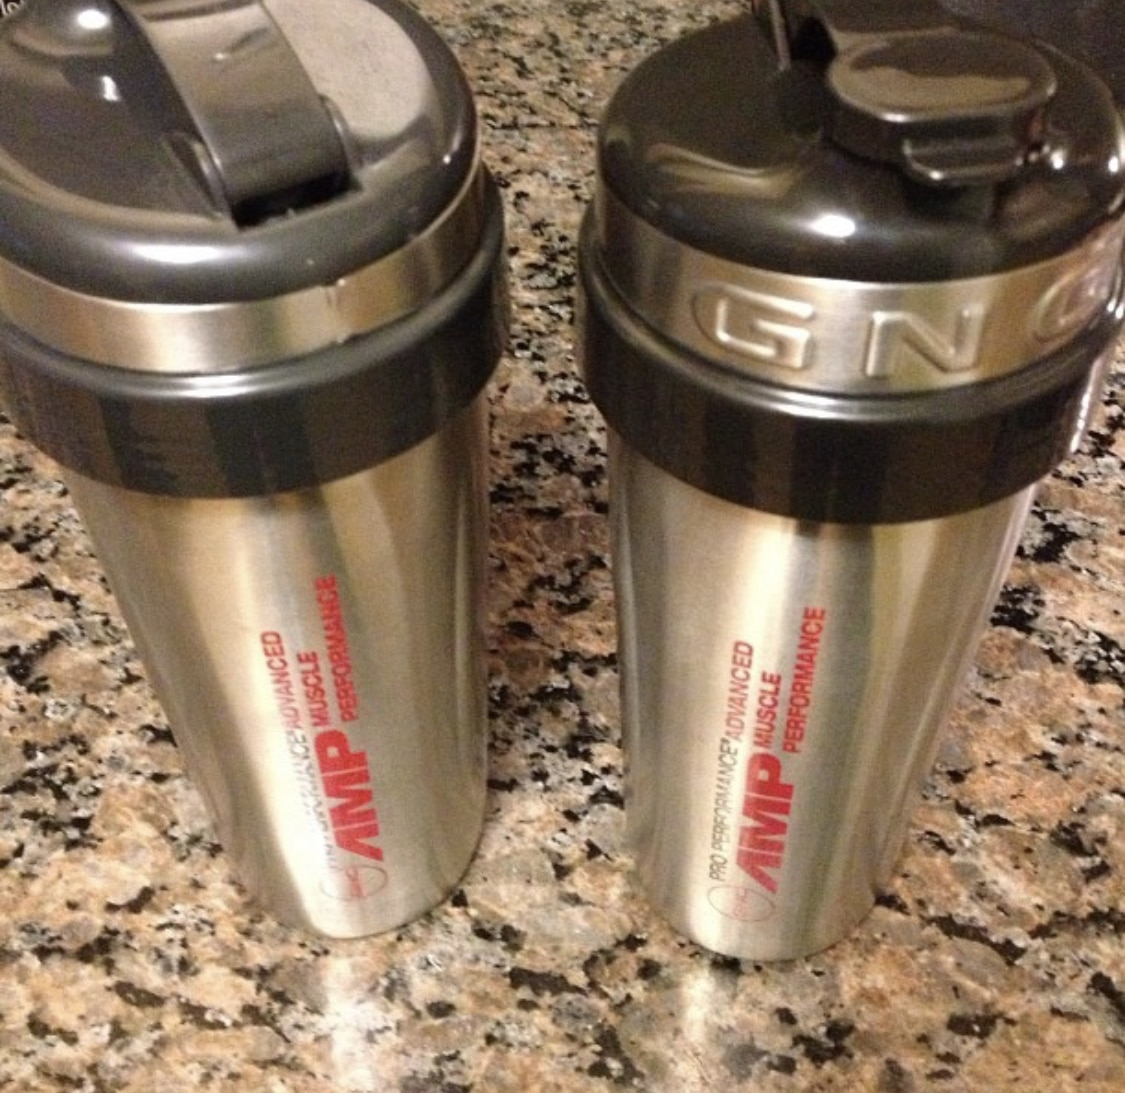 stainless steel shaker cup